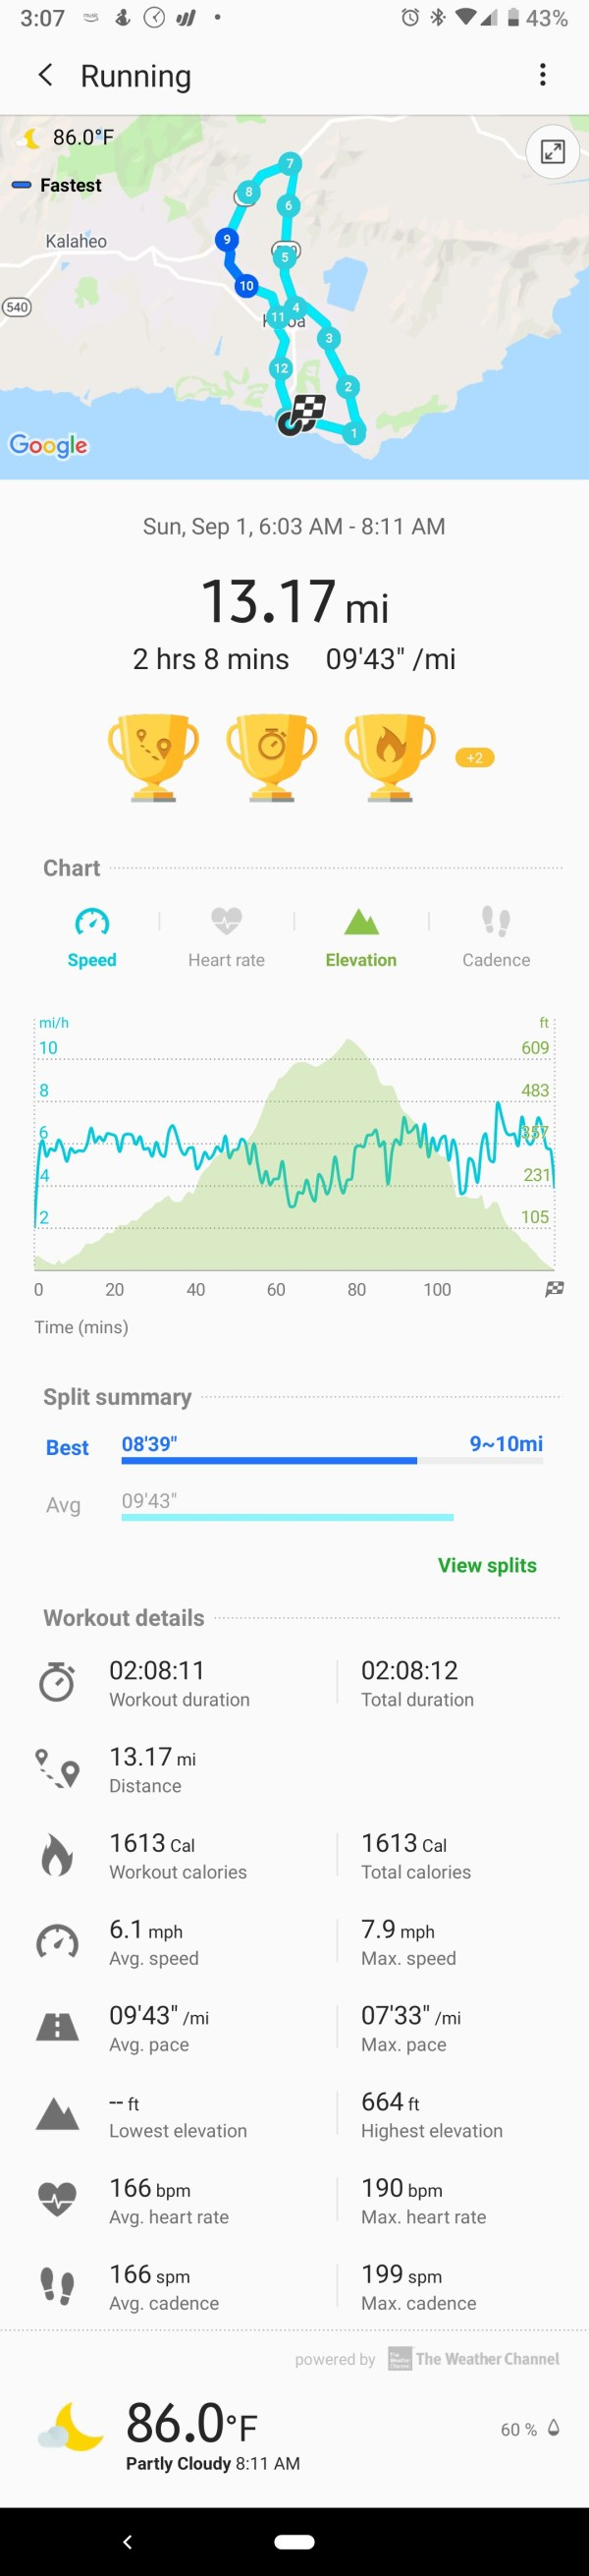 Kauai Half Marathon Data from smartwatch1